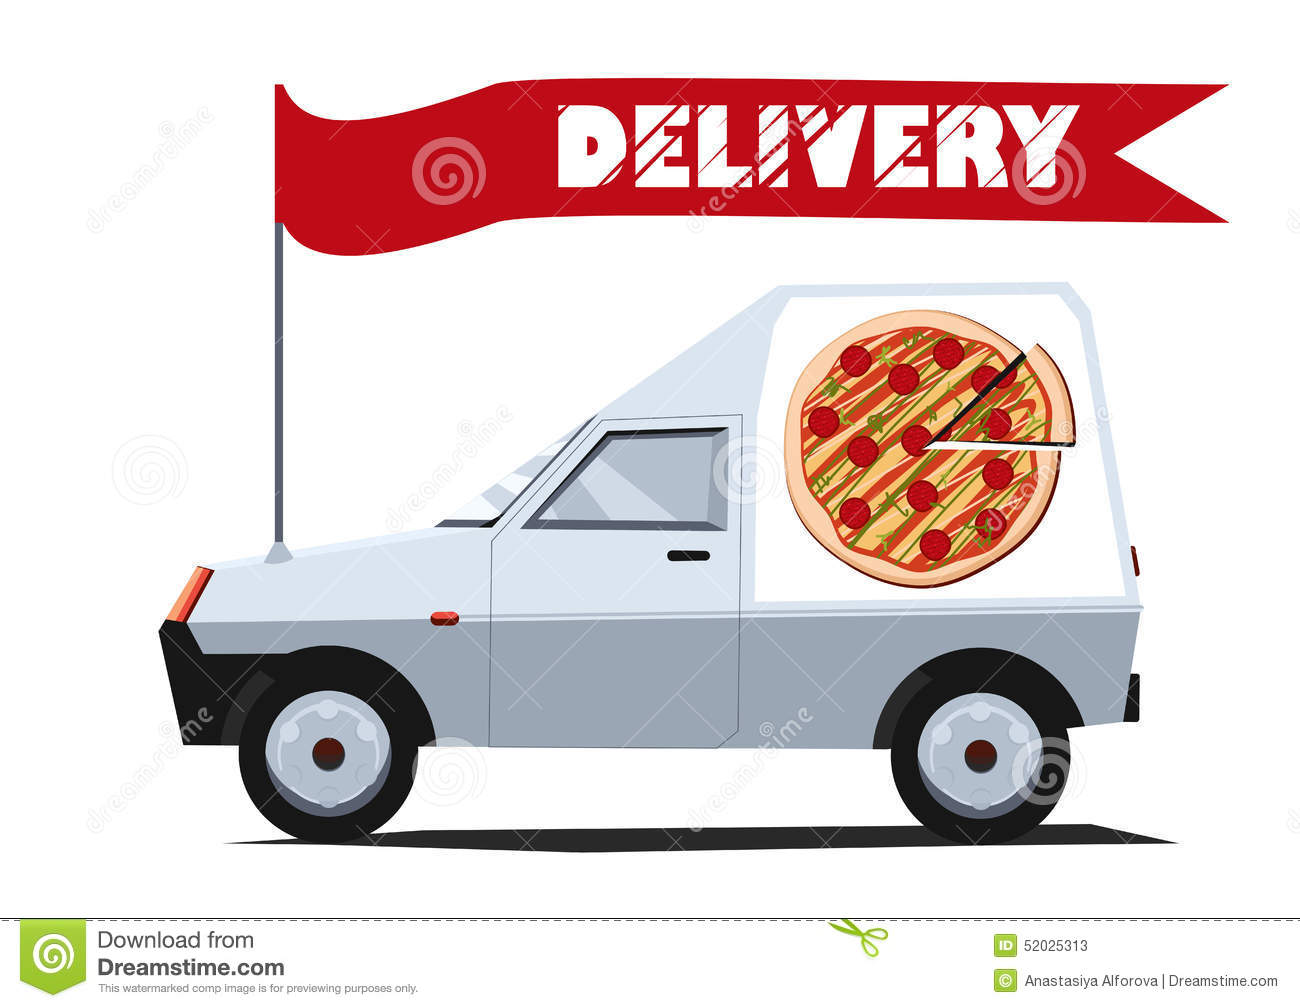 delivery driver clip art - photo #49